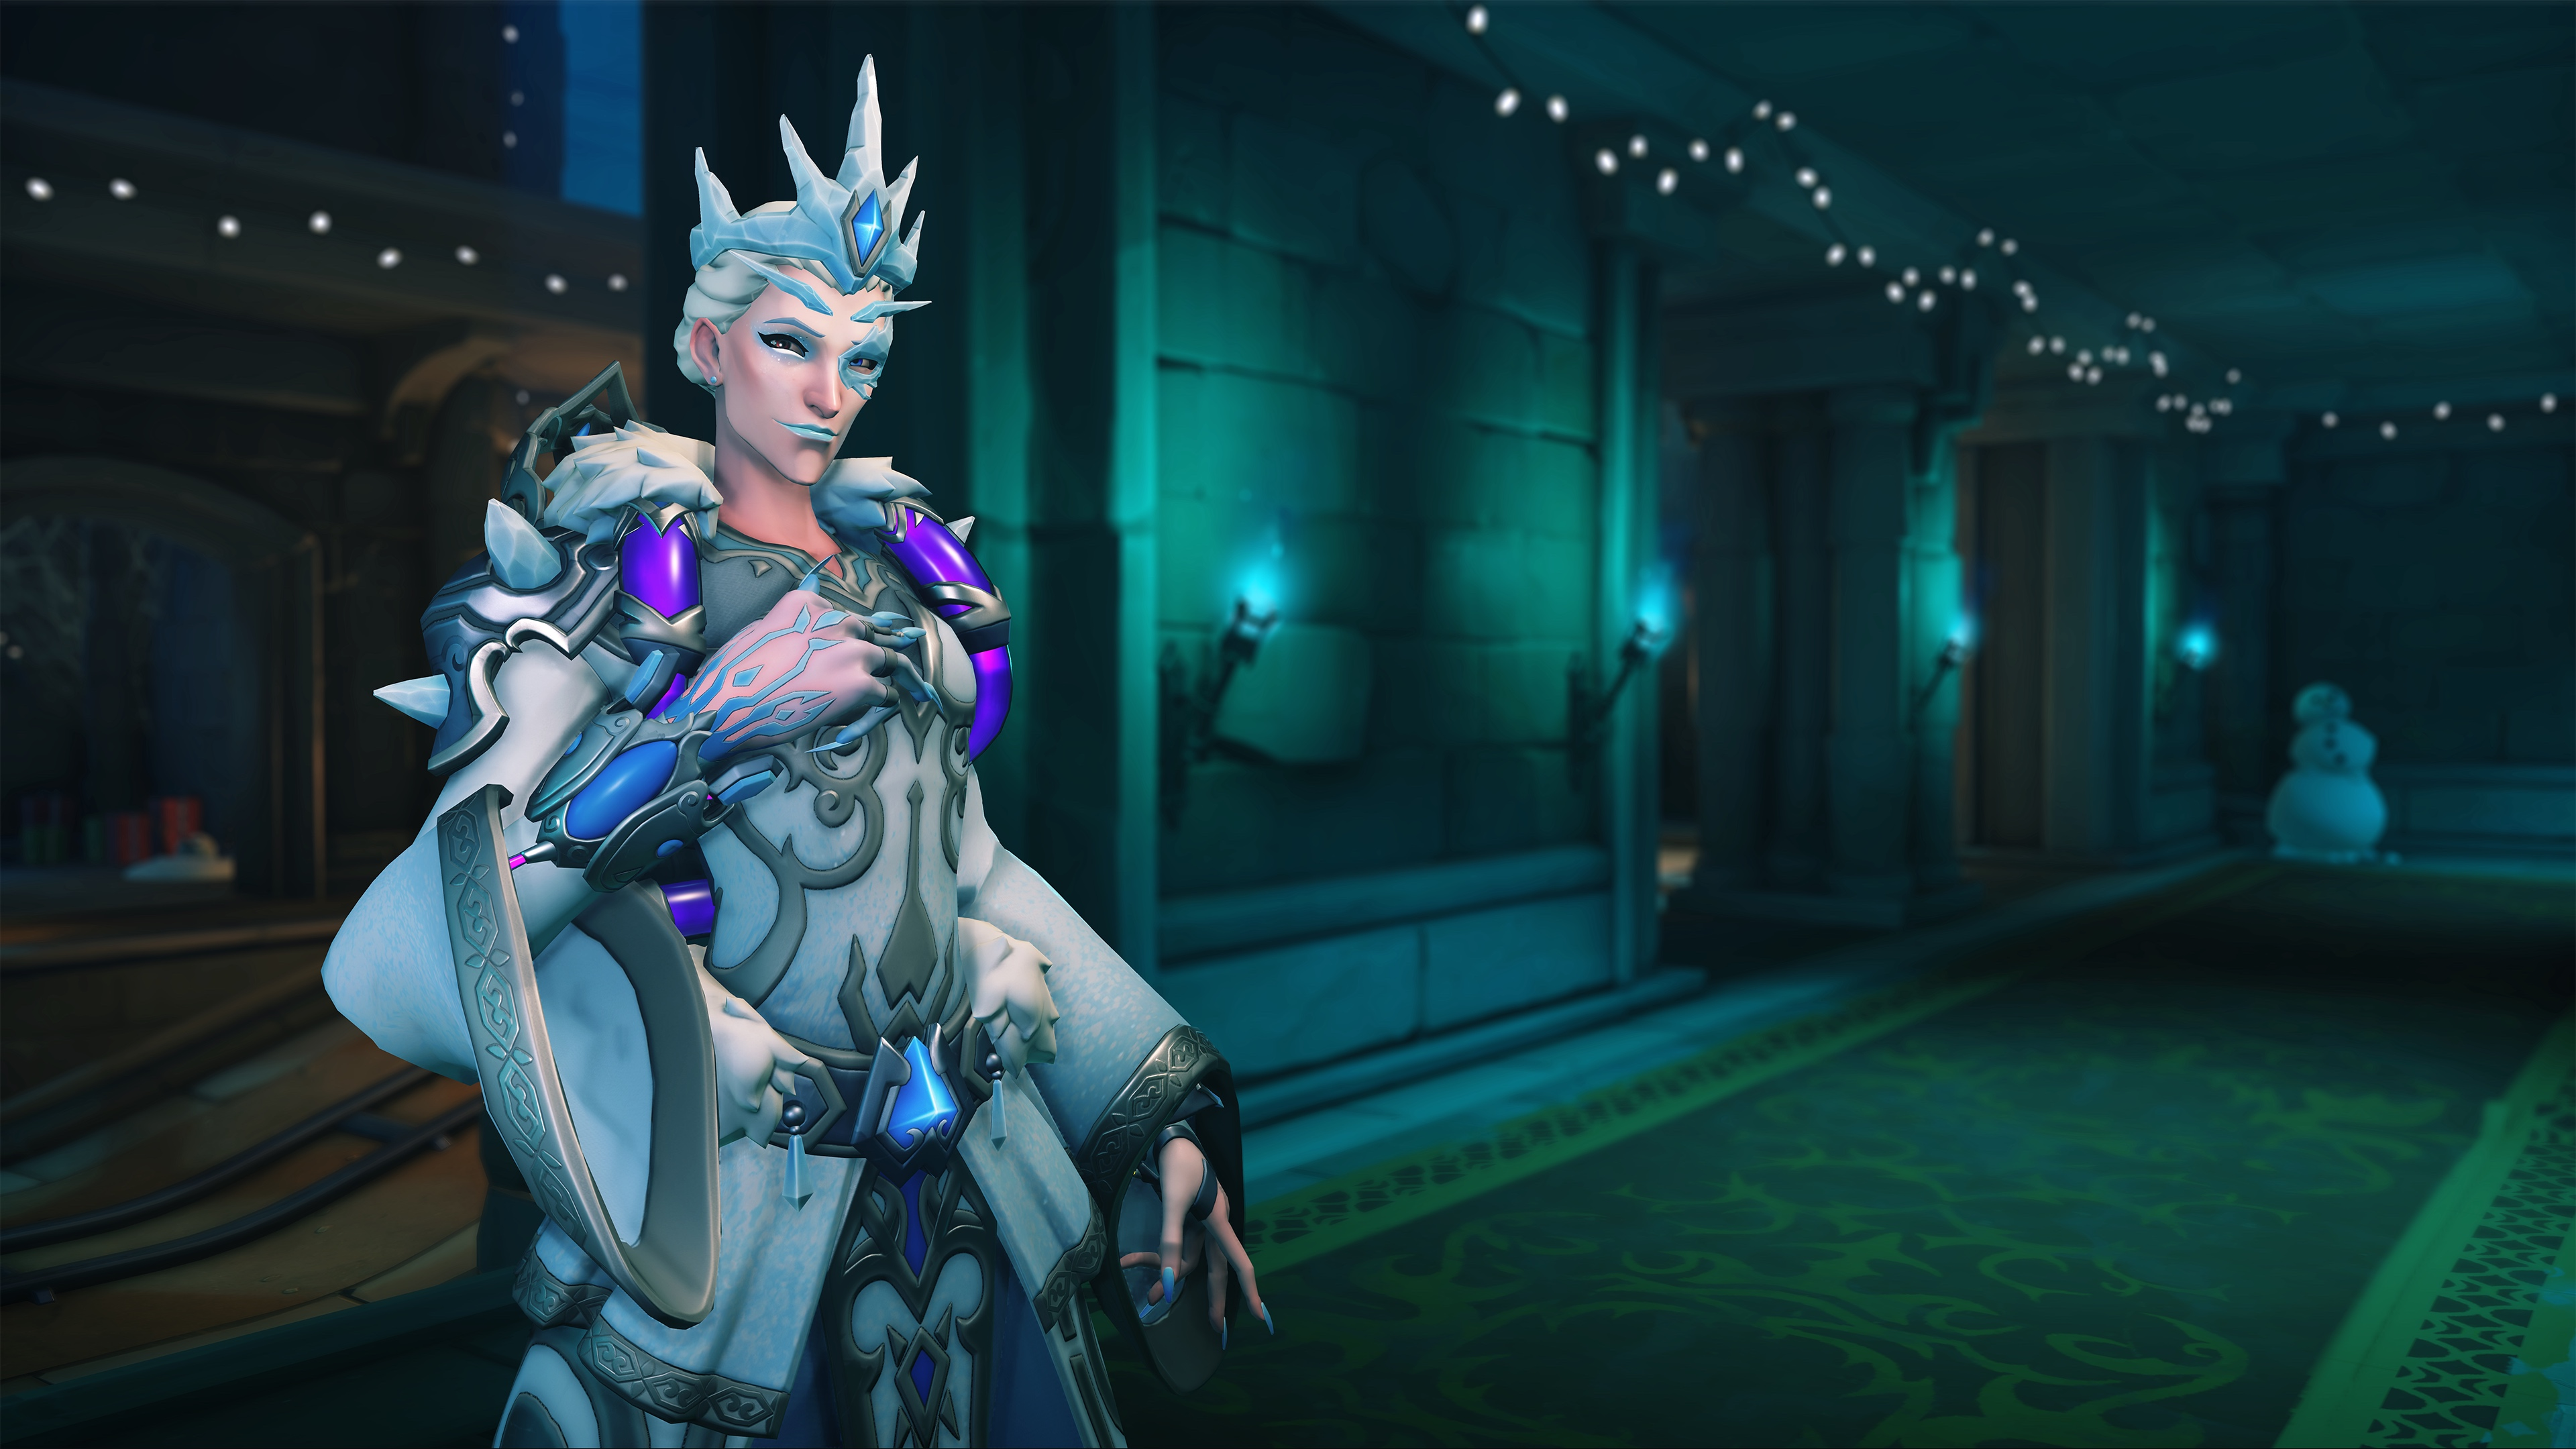 Overwatch Christmas Event 2021 Ends Overwatch Winter Wonderland 2020 Skins Dates And New Mode Revealed Polygon